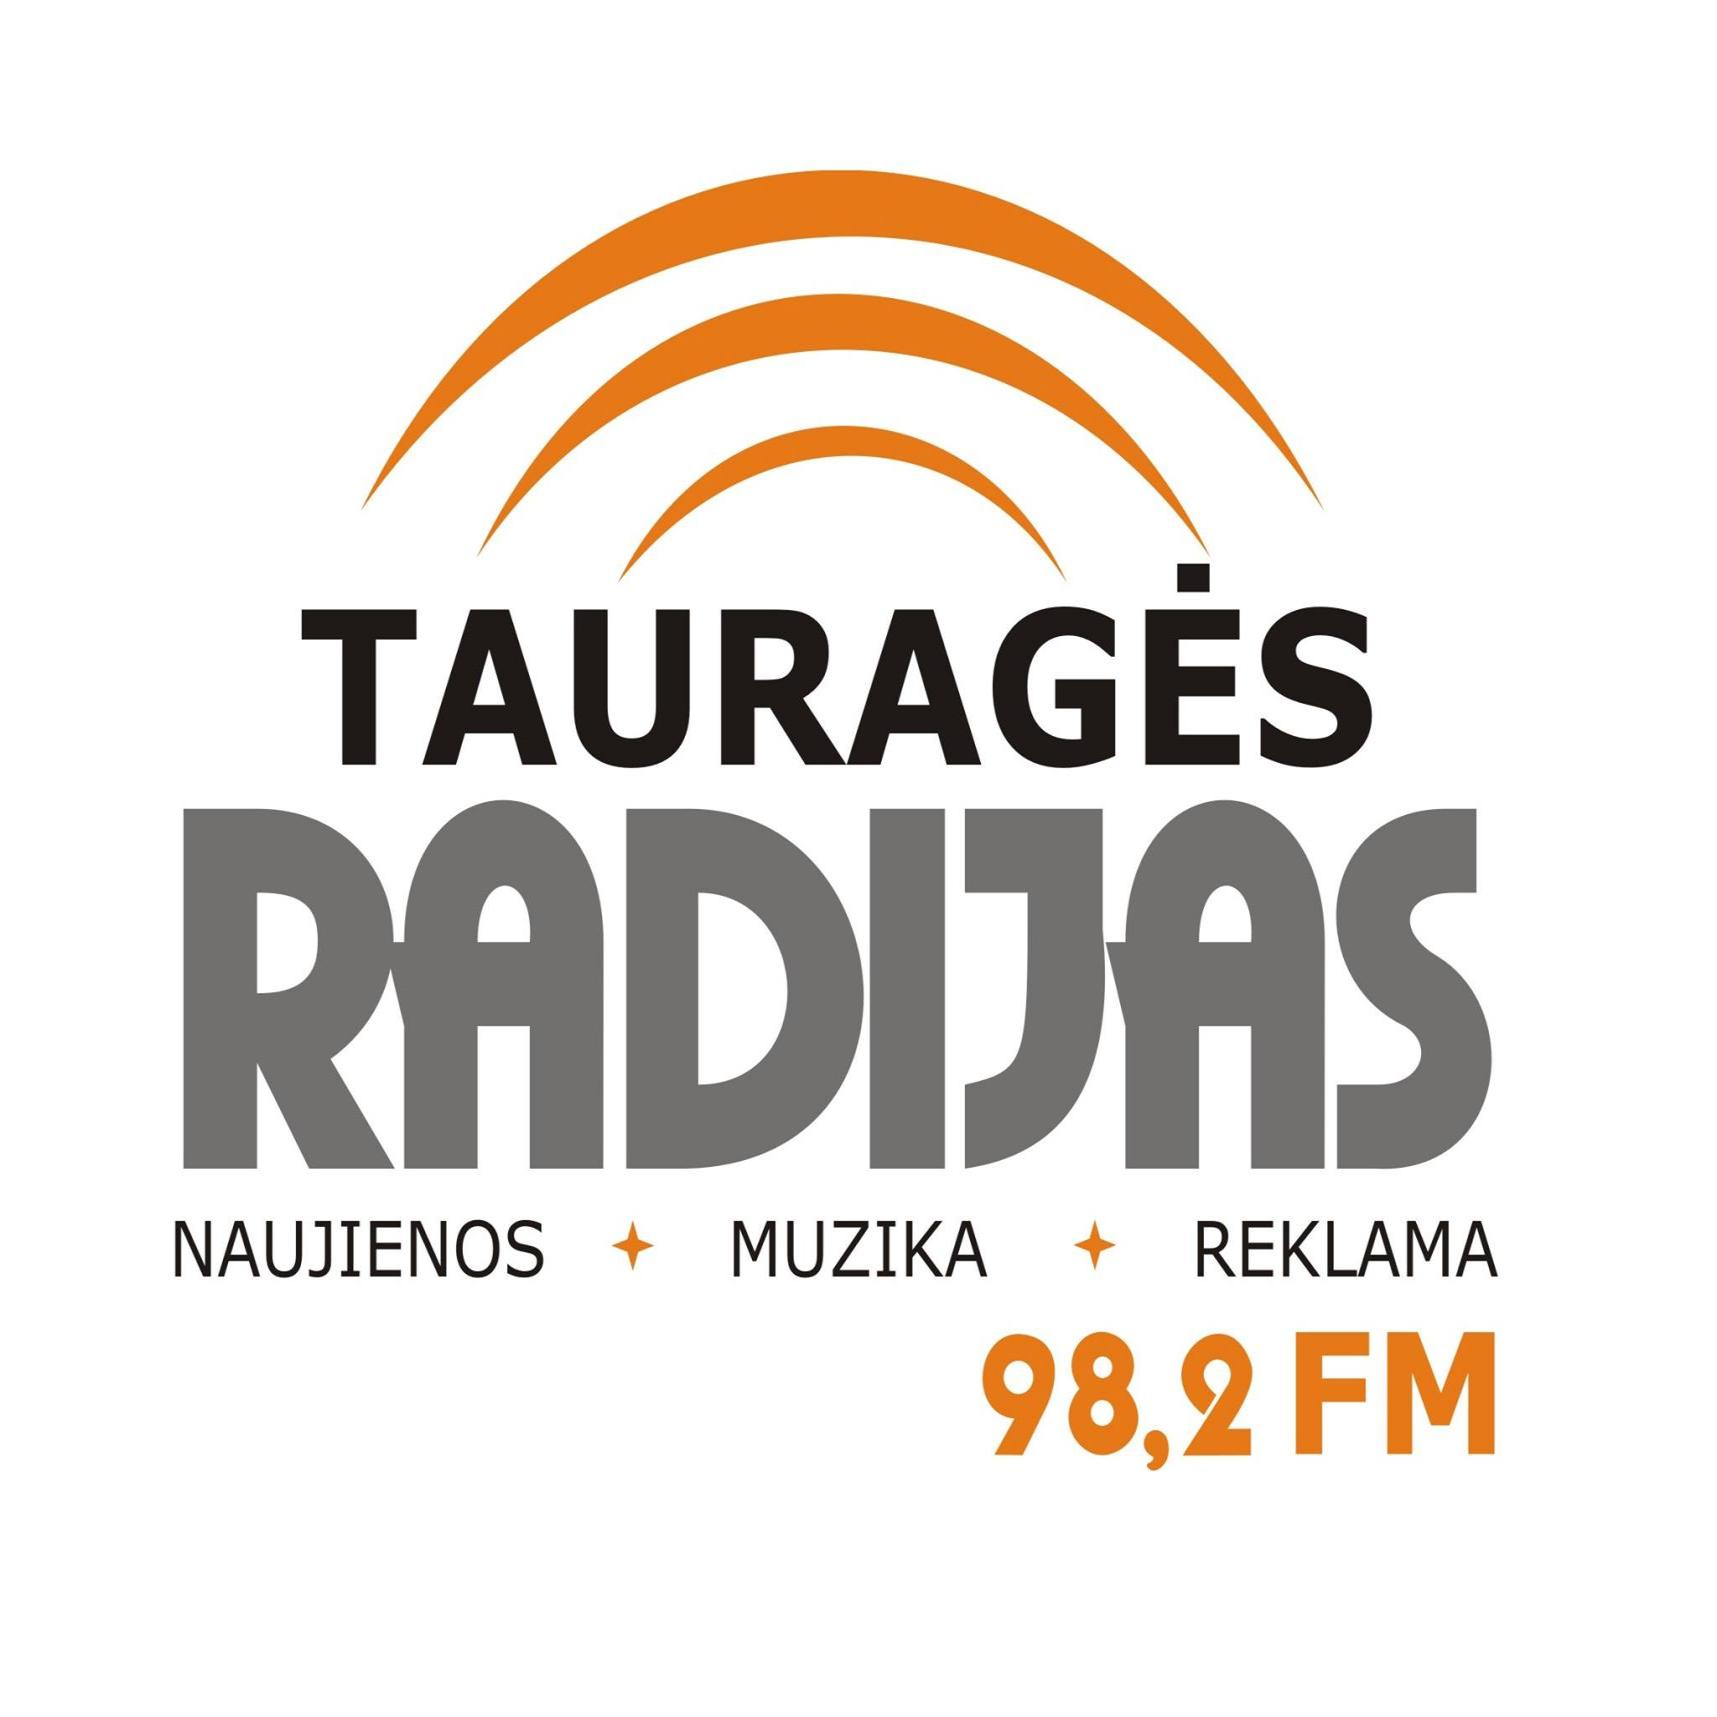 THE CHAINSMOKERS - Honest TAURAGES RADIJAS 98,2 FM